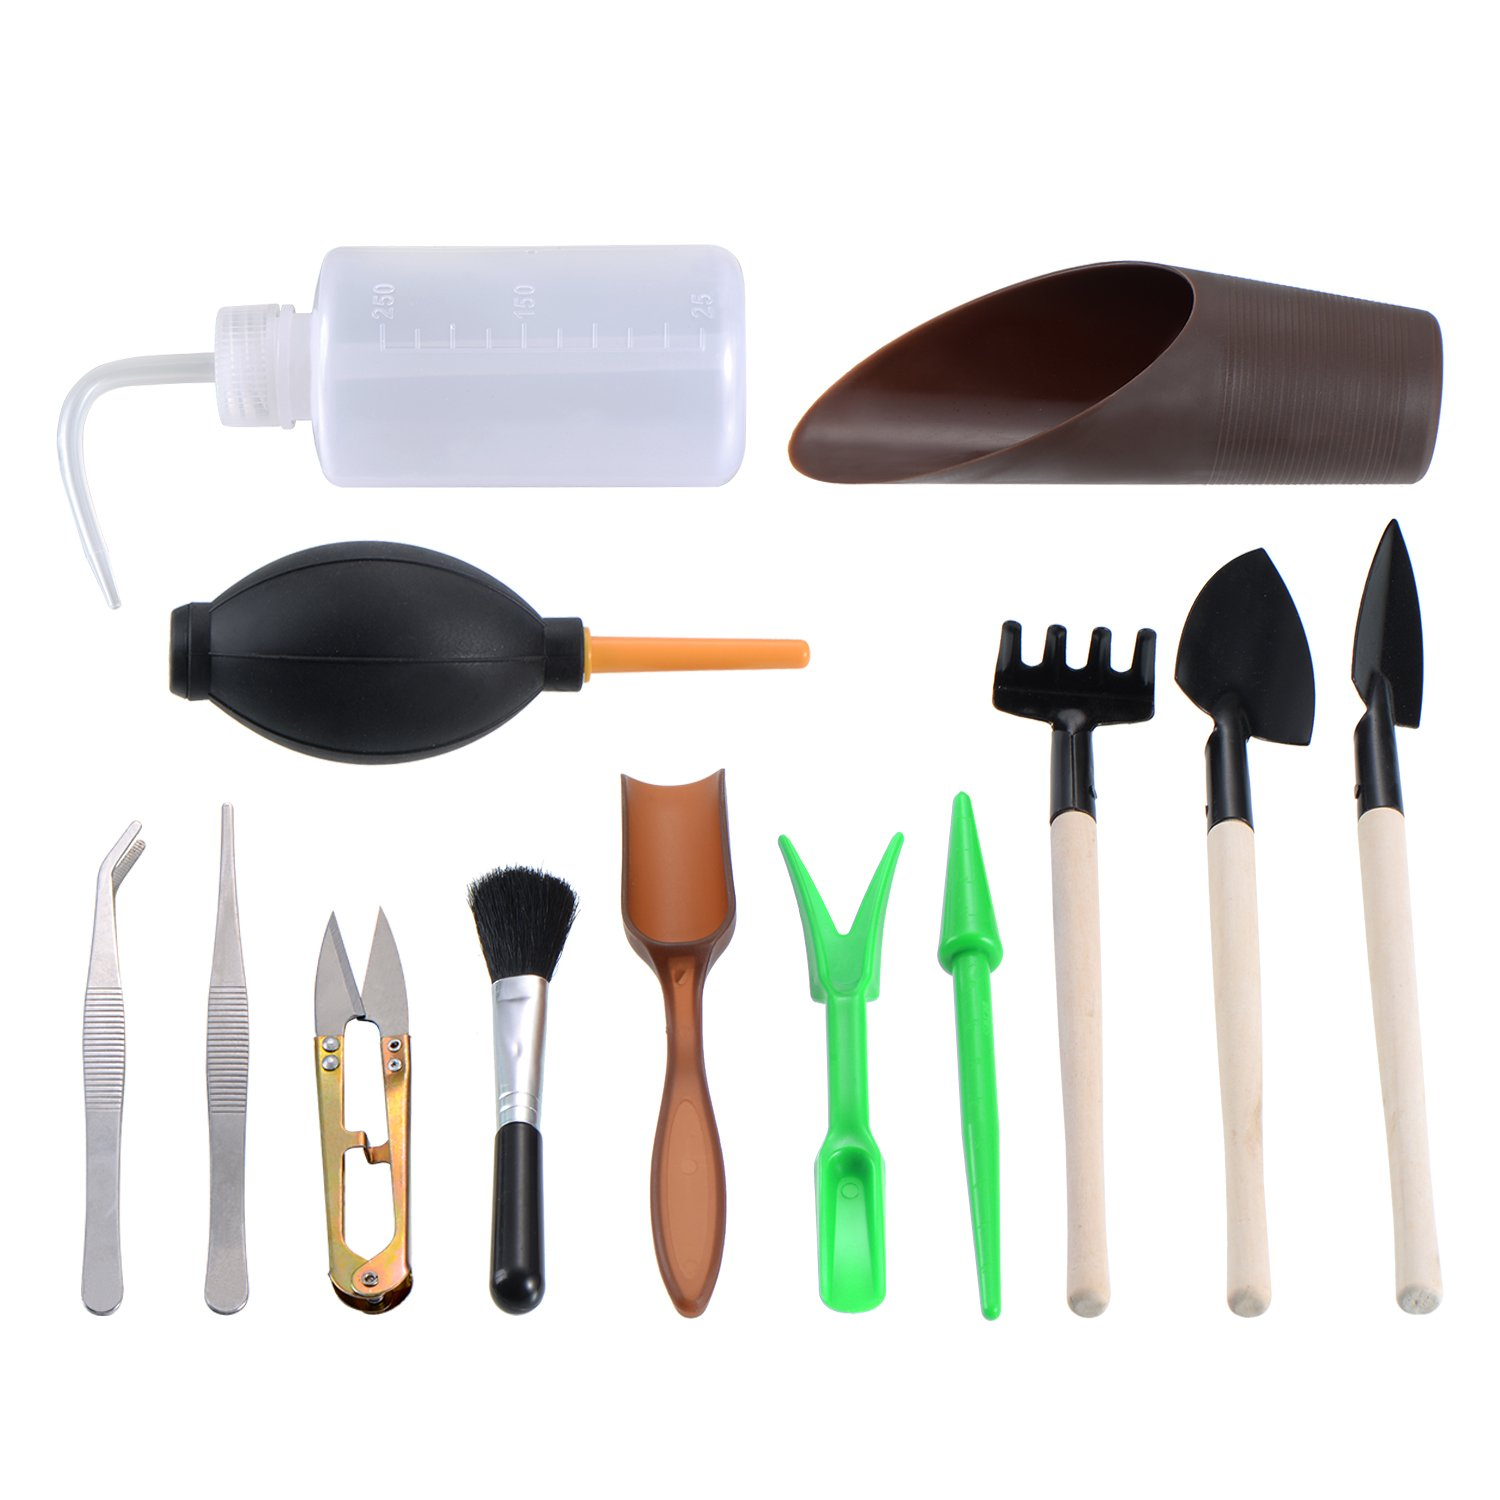 Best rated in garden tool sets helpful customer reviews for Best quality garden tools